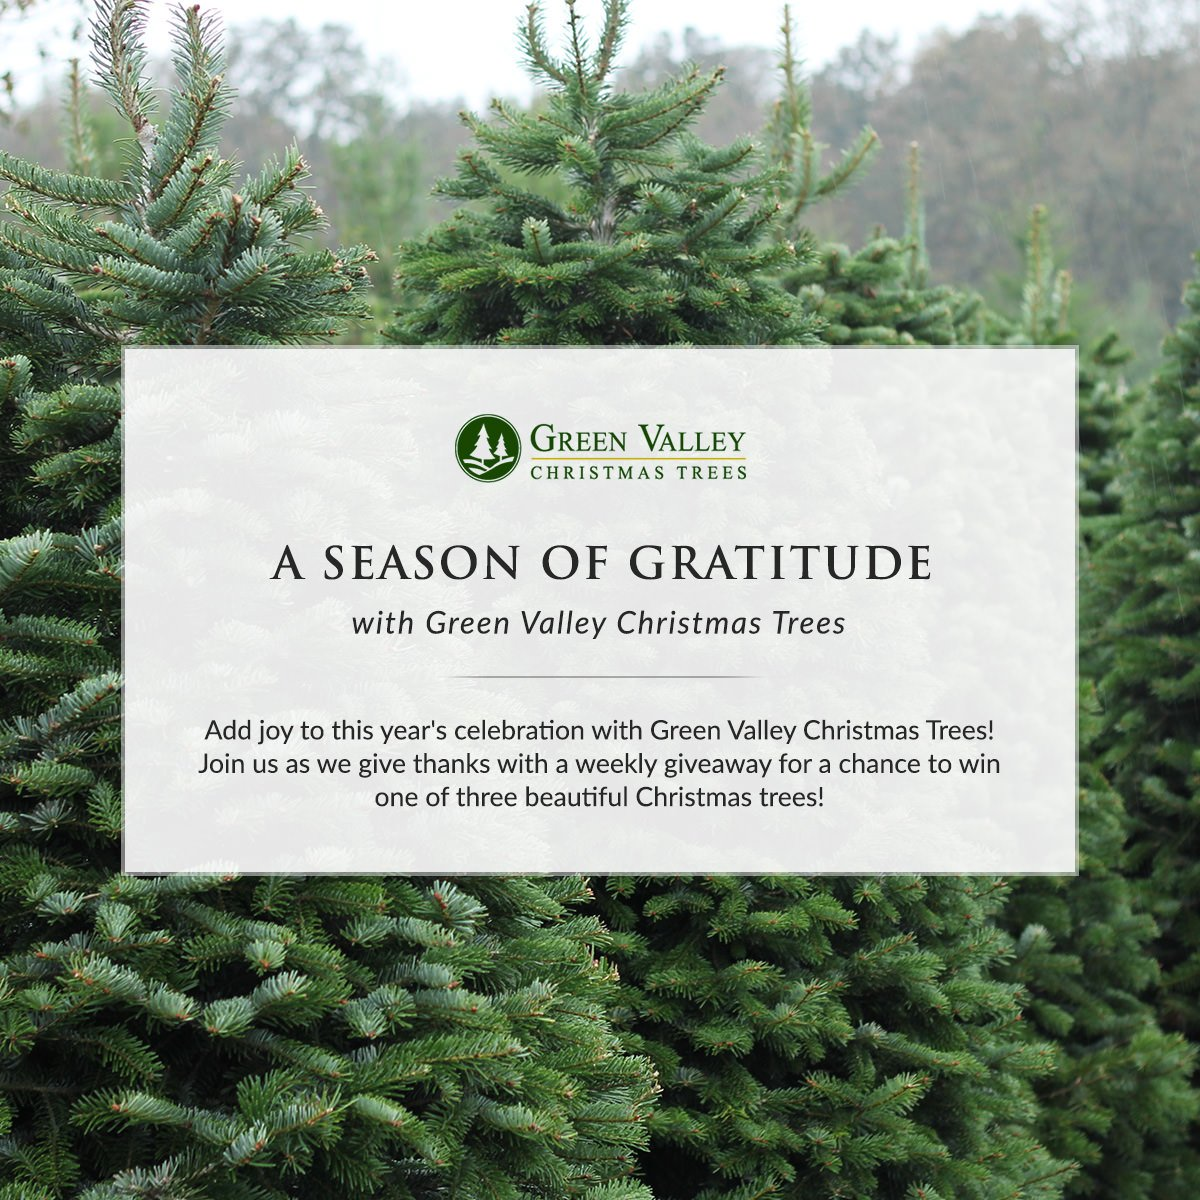 green valley trees on twitter join us as we give thanks for a chance to win one of 3 beautiful greenvalleytree christmastrees gvctgivesthanks